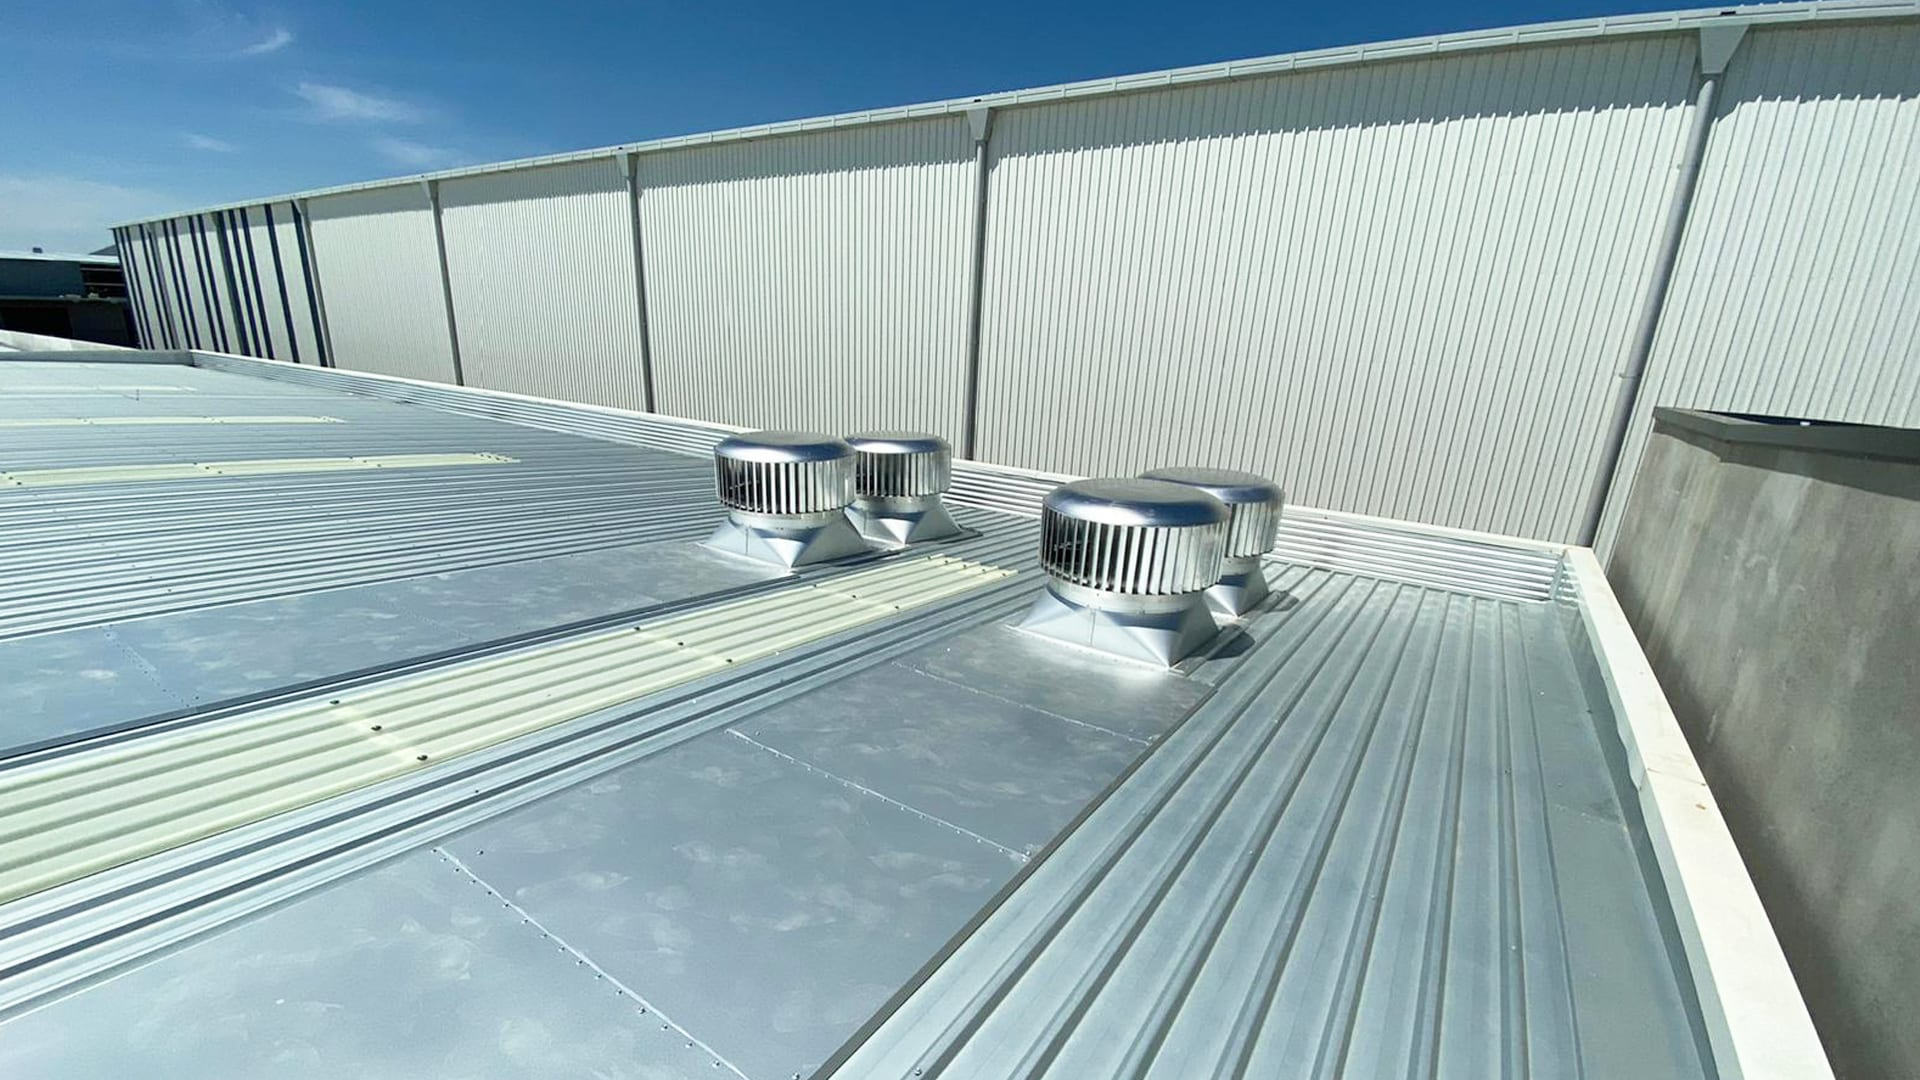 Rotary Vents with Back Trays on Warehouse Roof